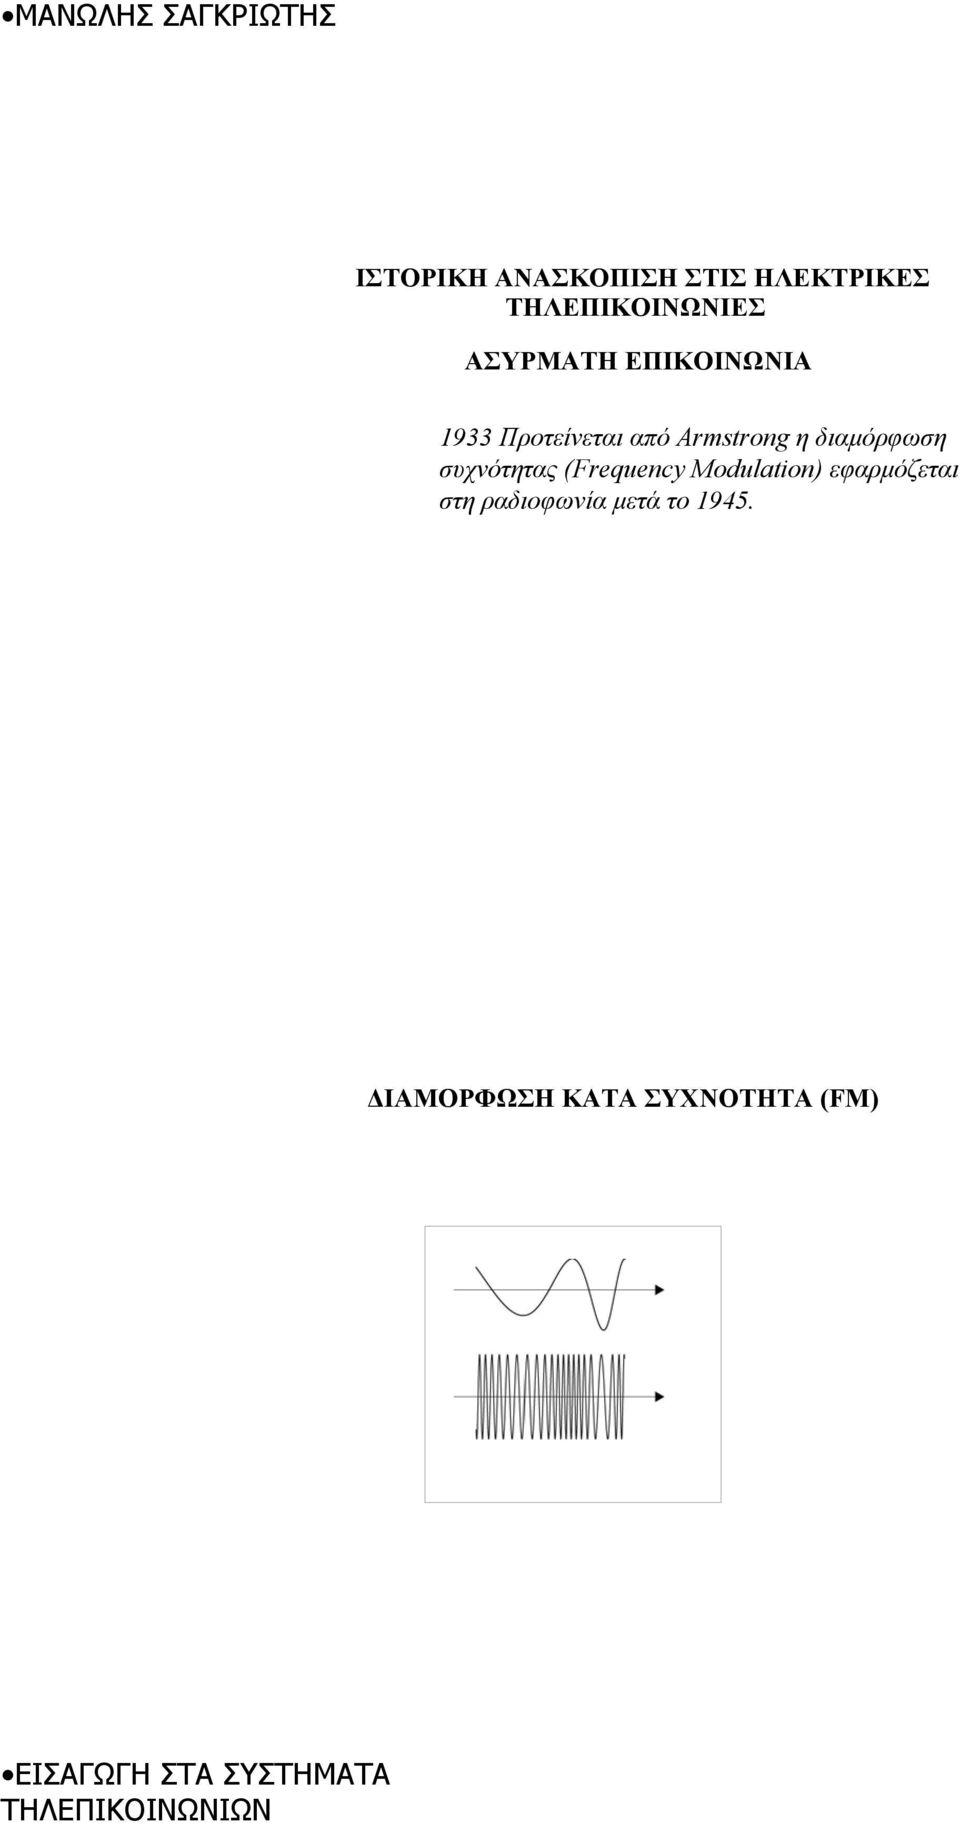 (Frequency Modulation) εφαρµόζεται στη